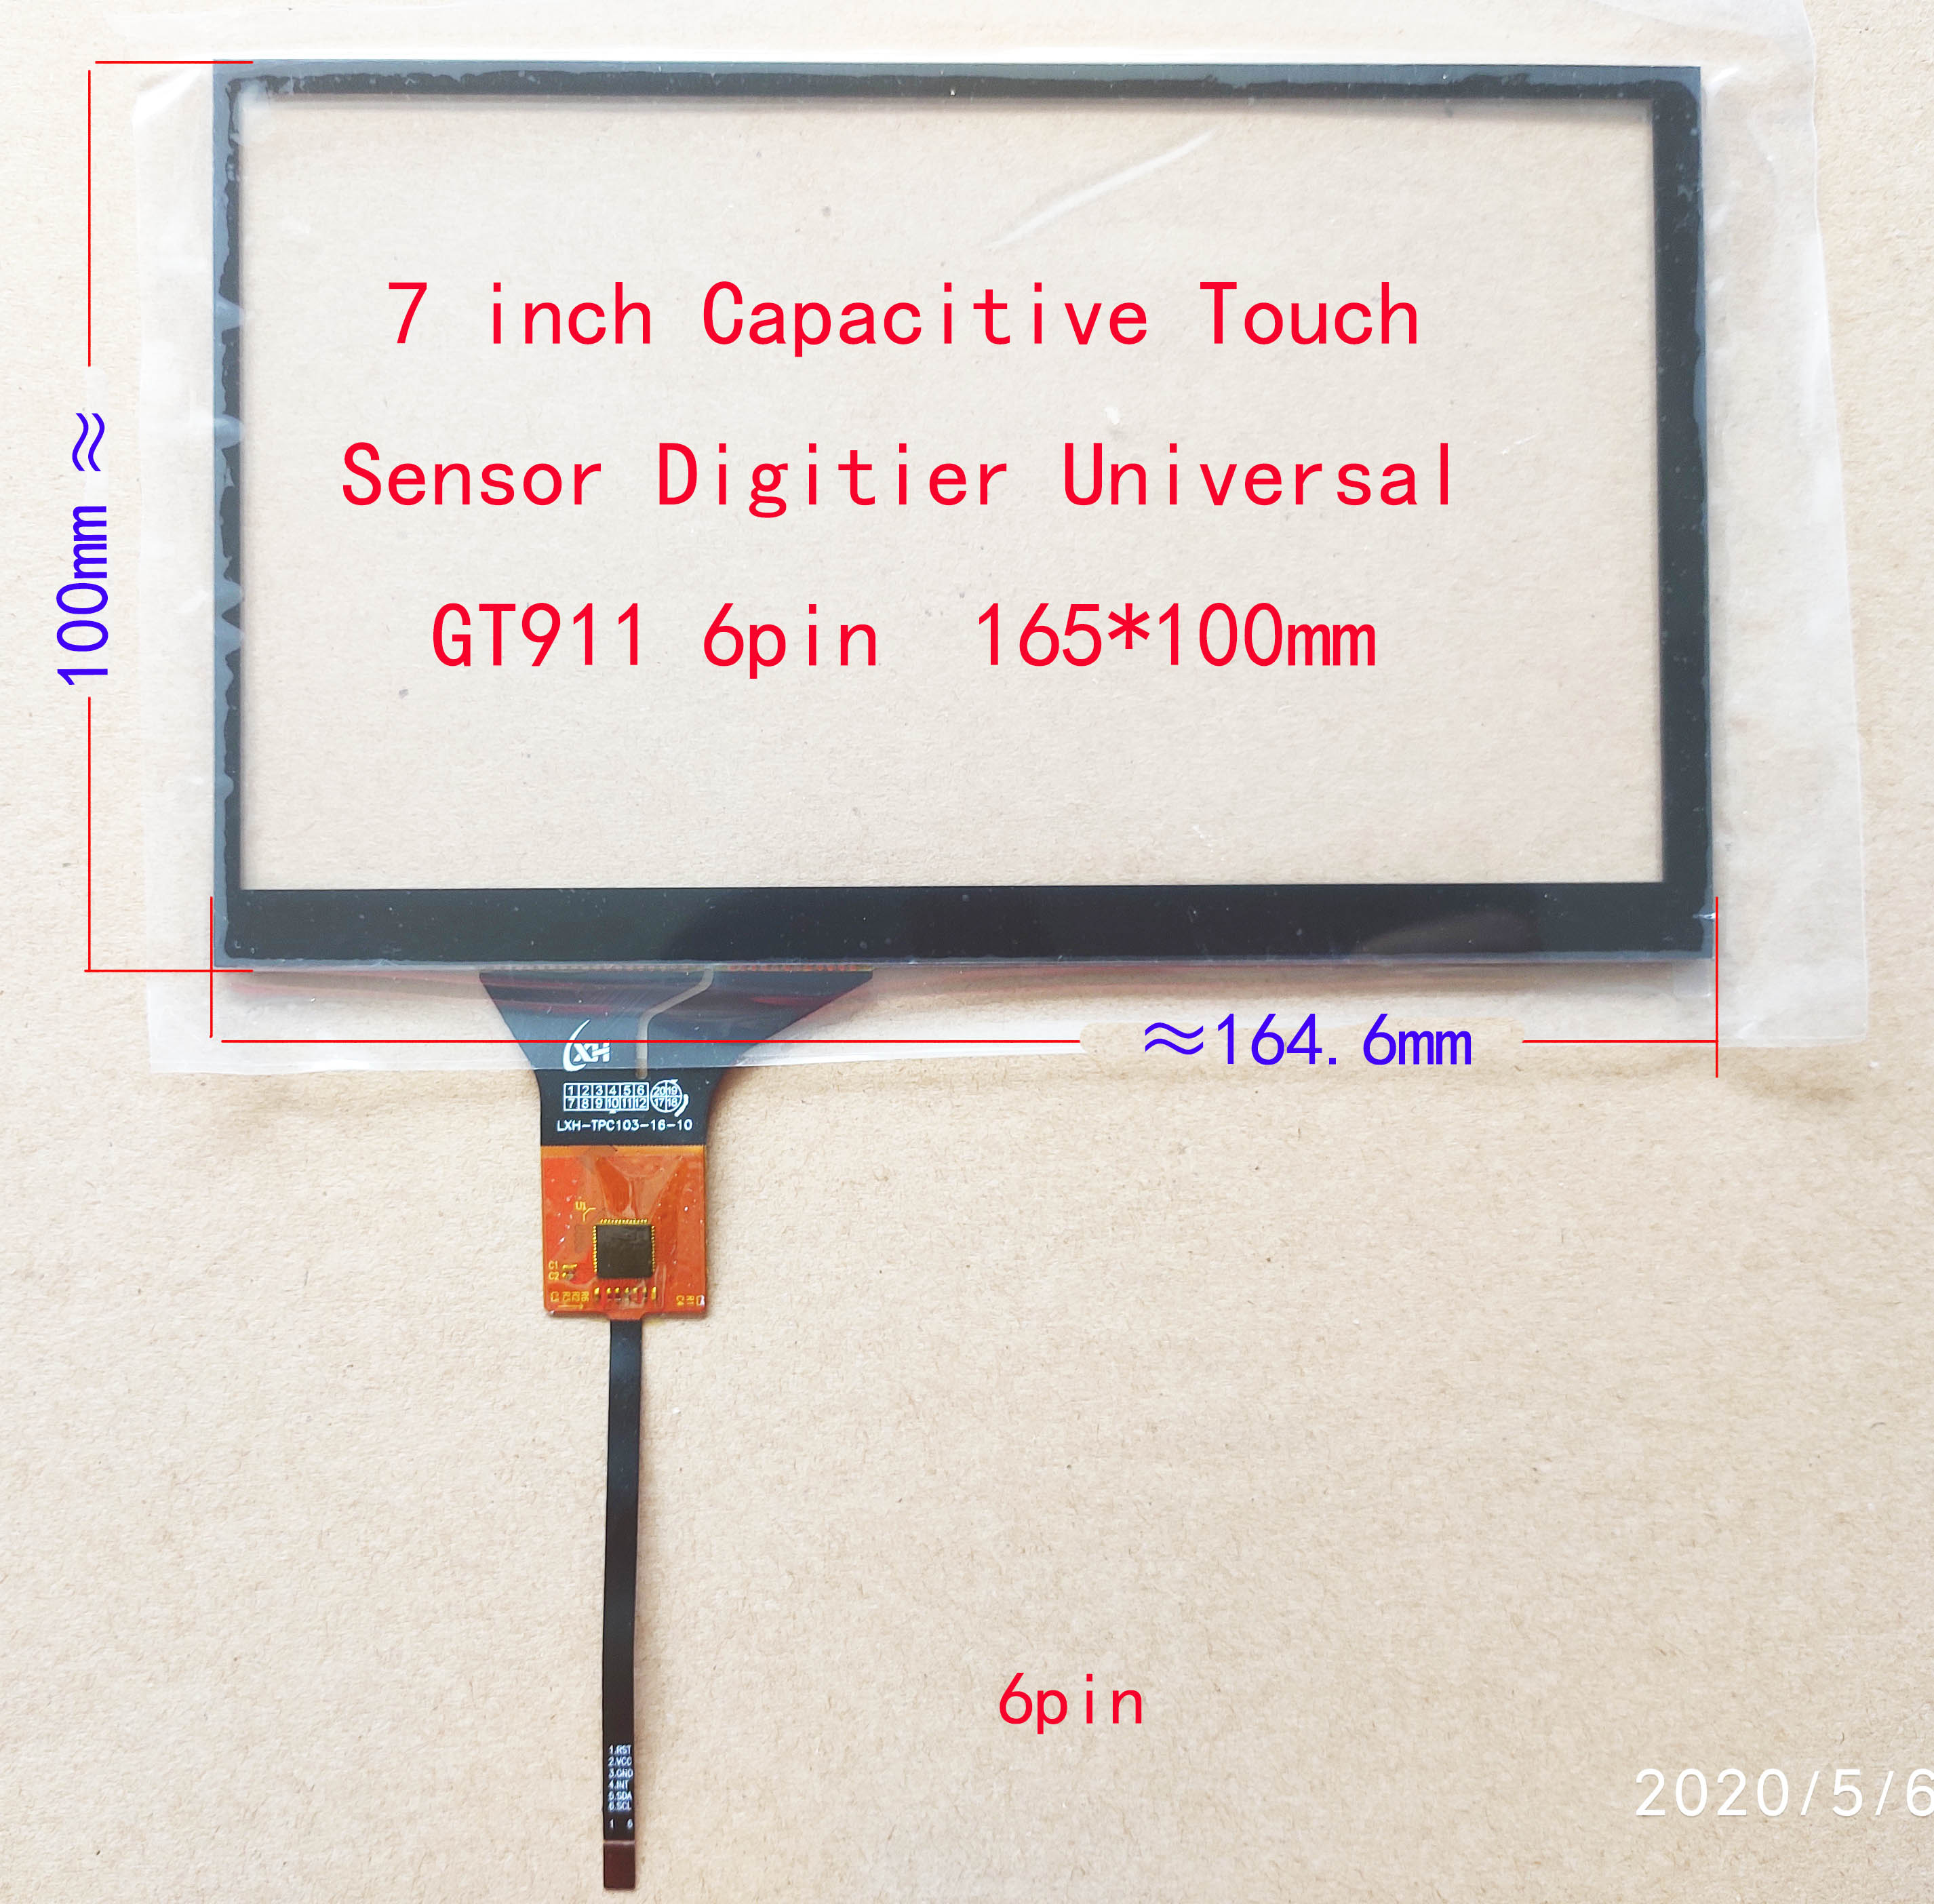 lowest price 6 2 6 5 7 8 9 10 1 10 2 Inch Car Radio Touch Screen 6Pin GT911 Universal Touch panel USB Controller Board Sensor digitizer